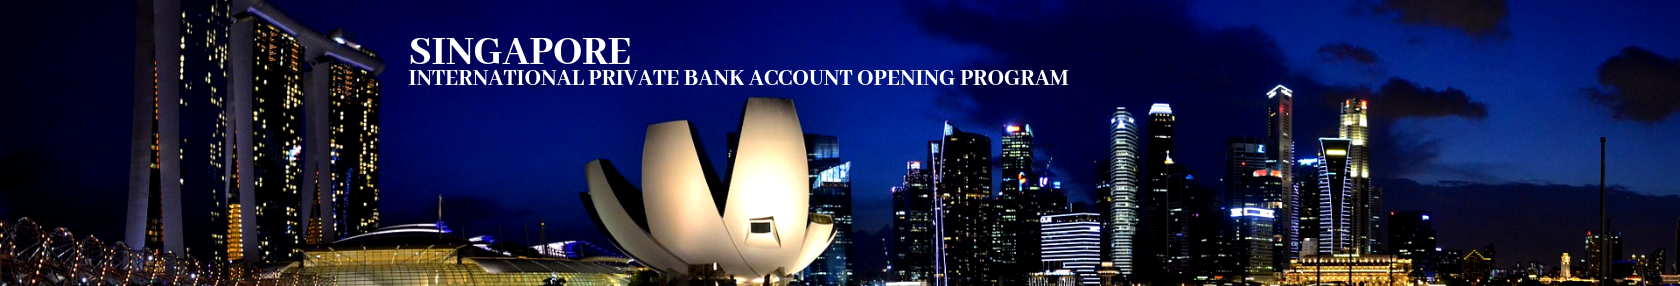 Singapore, Private Bank Account Opening